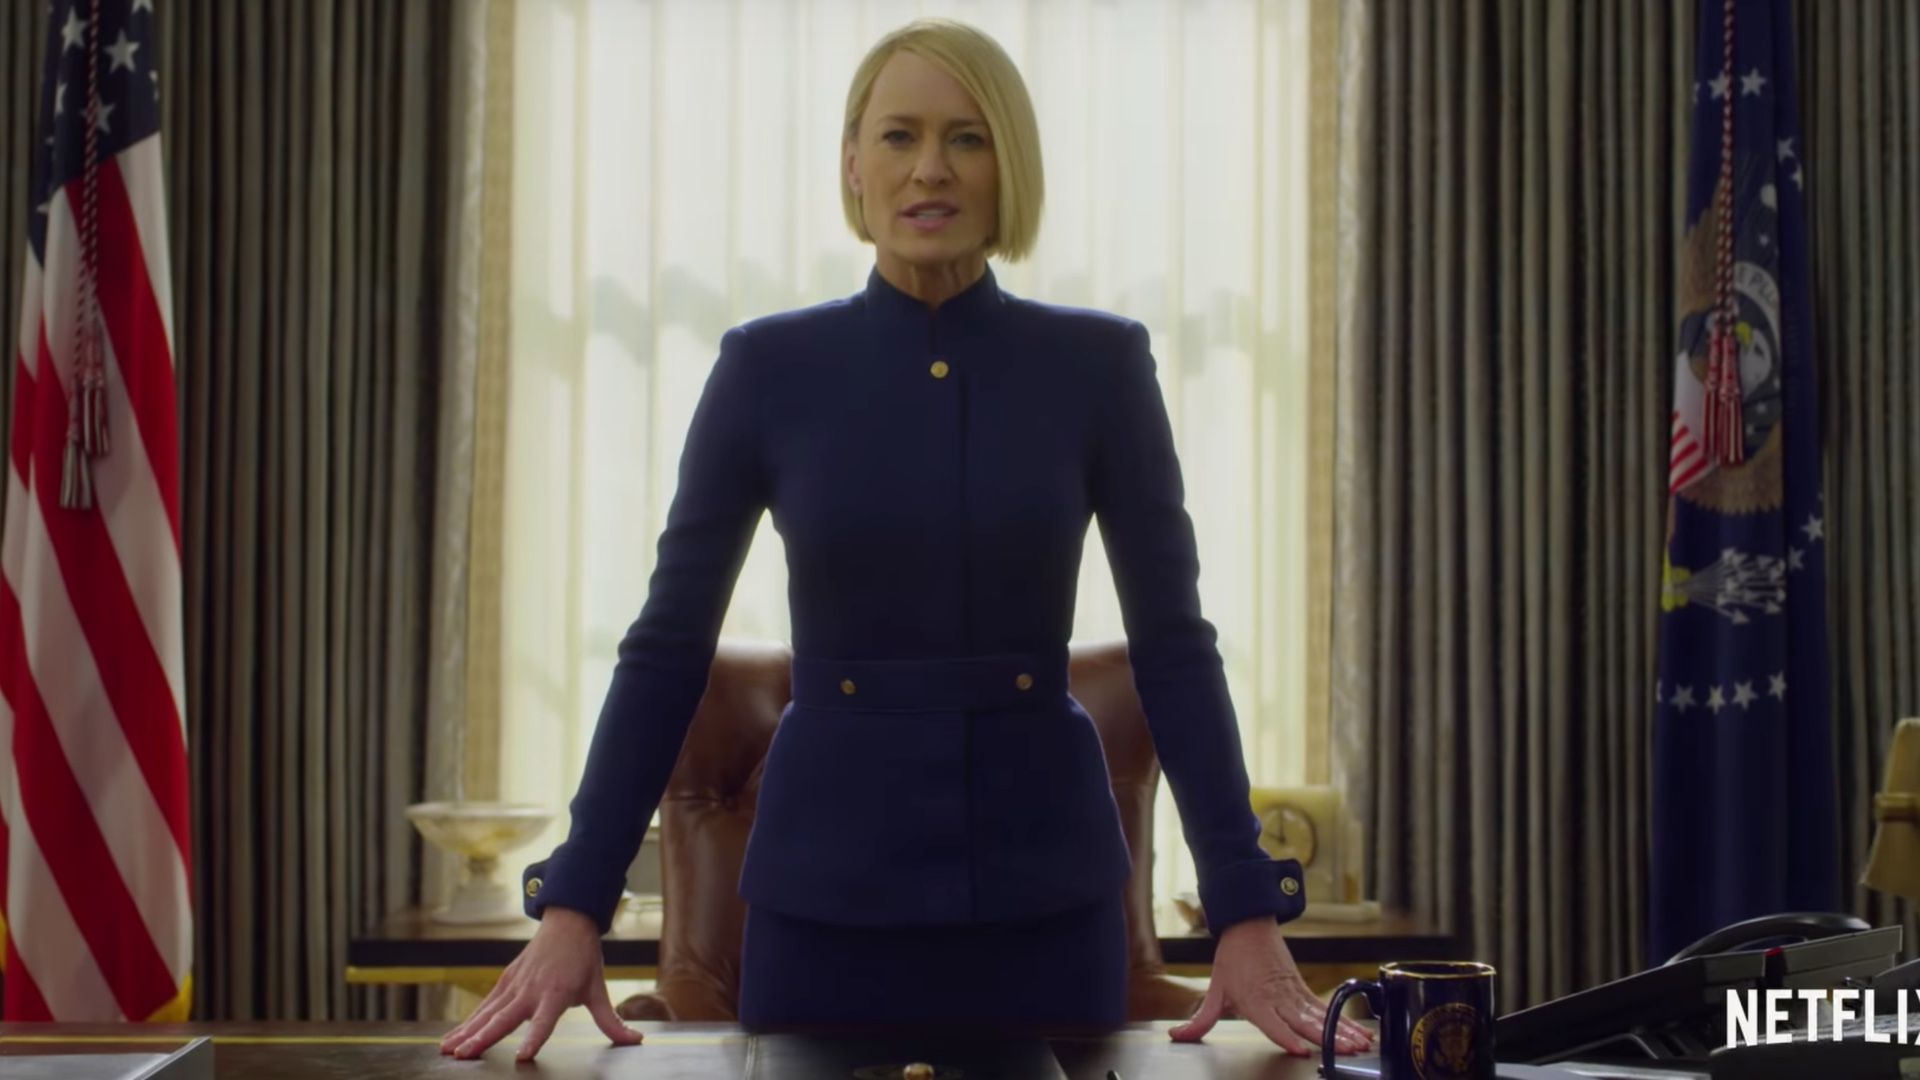 watch-an-incredibly-short-and-unsatisfying-teaser-for-the-final-season-of-netflixs-house-of-cards-social.jpg